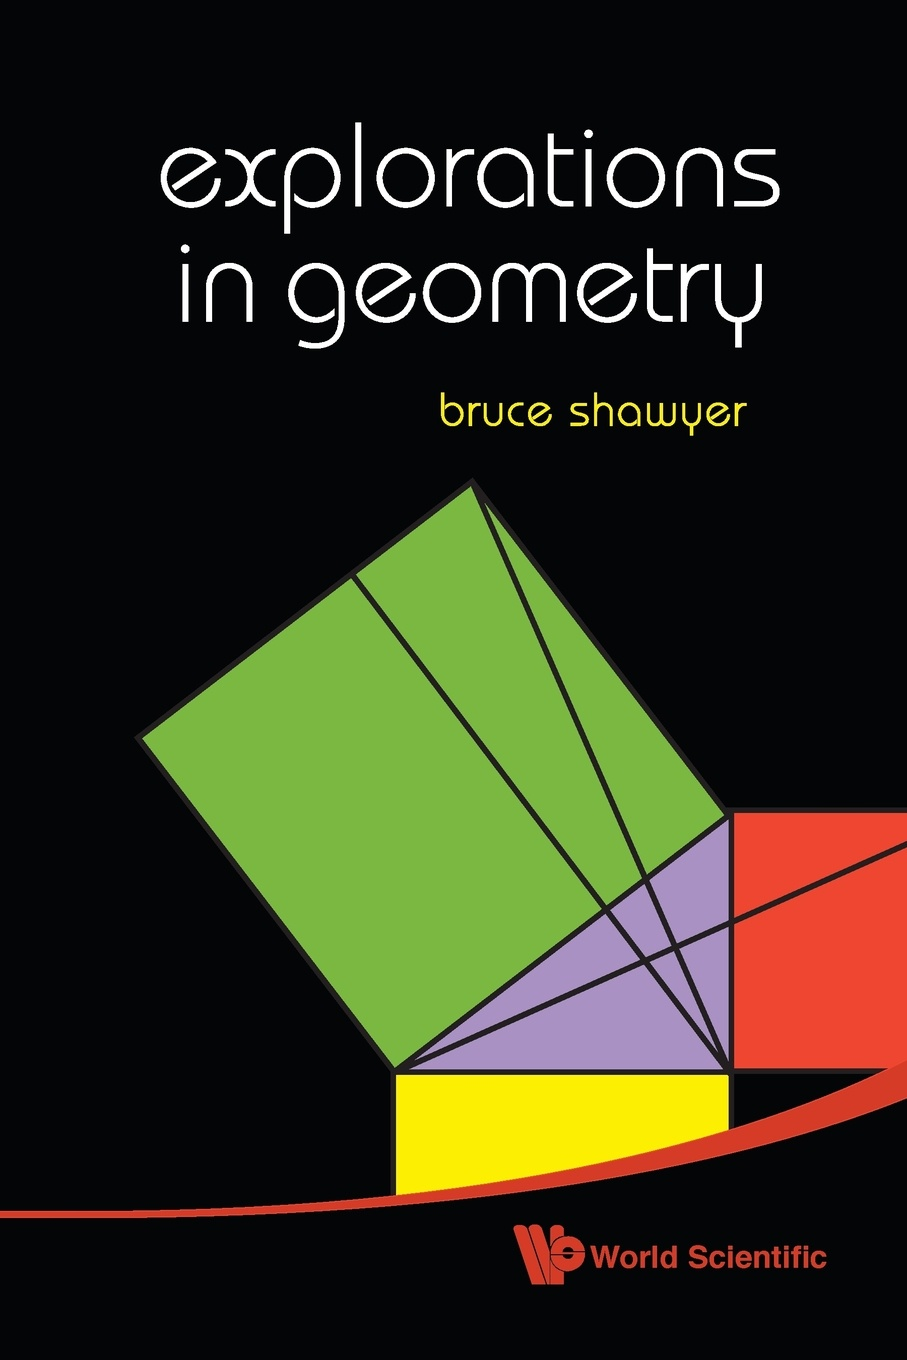 Bruce Shawyer Explorations in Geometry